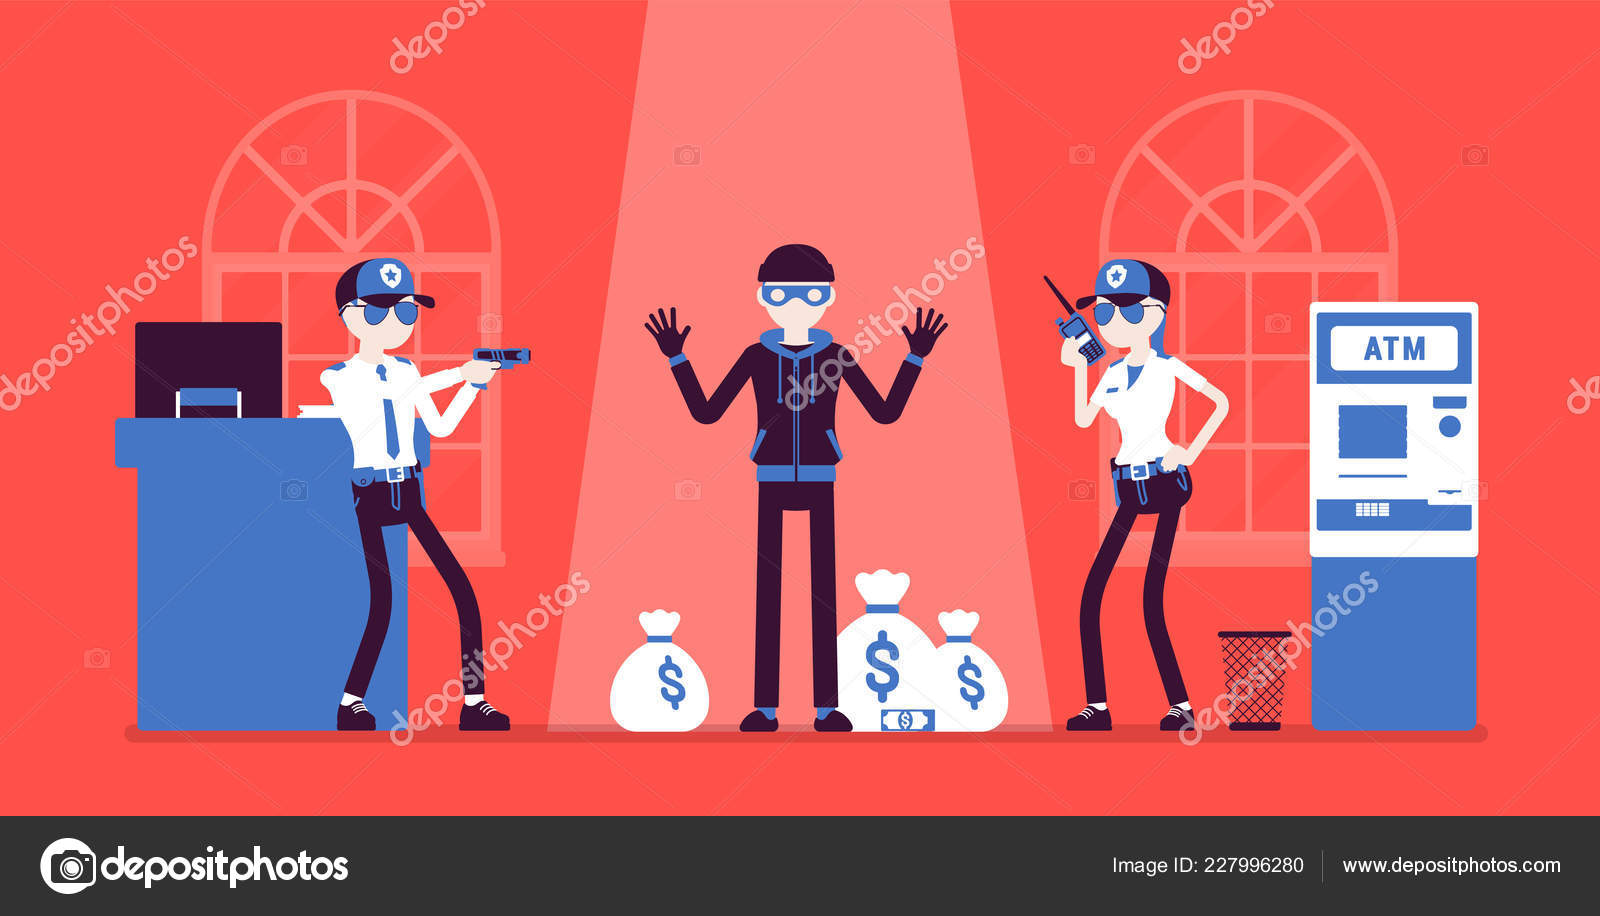 ea8ccc17c0c Bank robber caught by police — Stock Vector © Andrew Rybalko  227996280